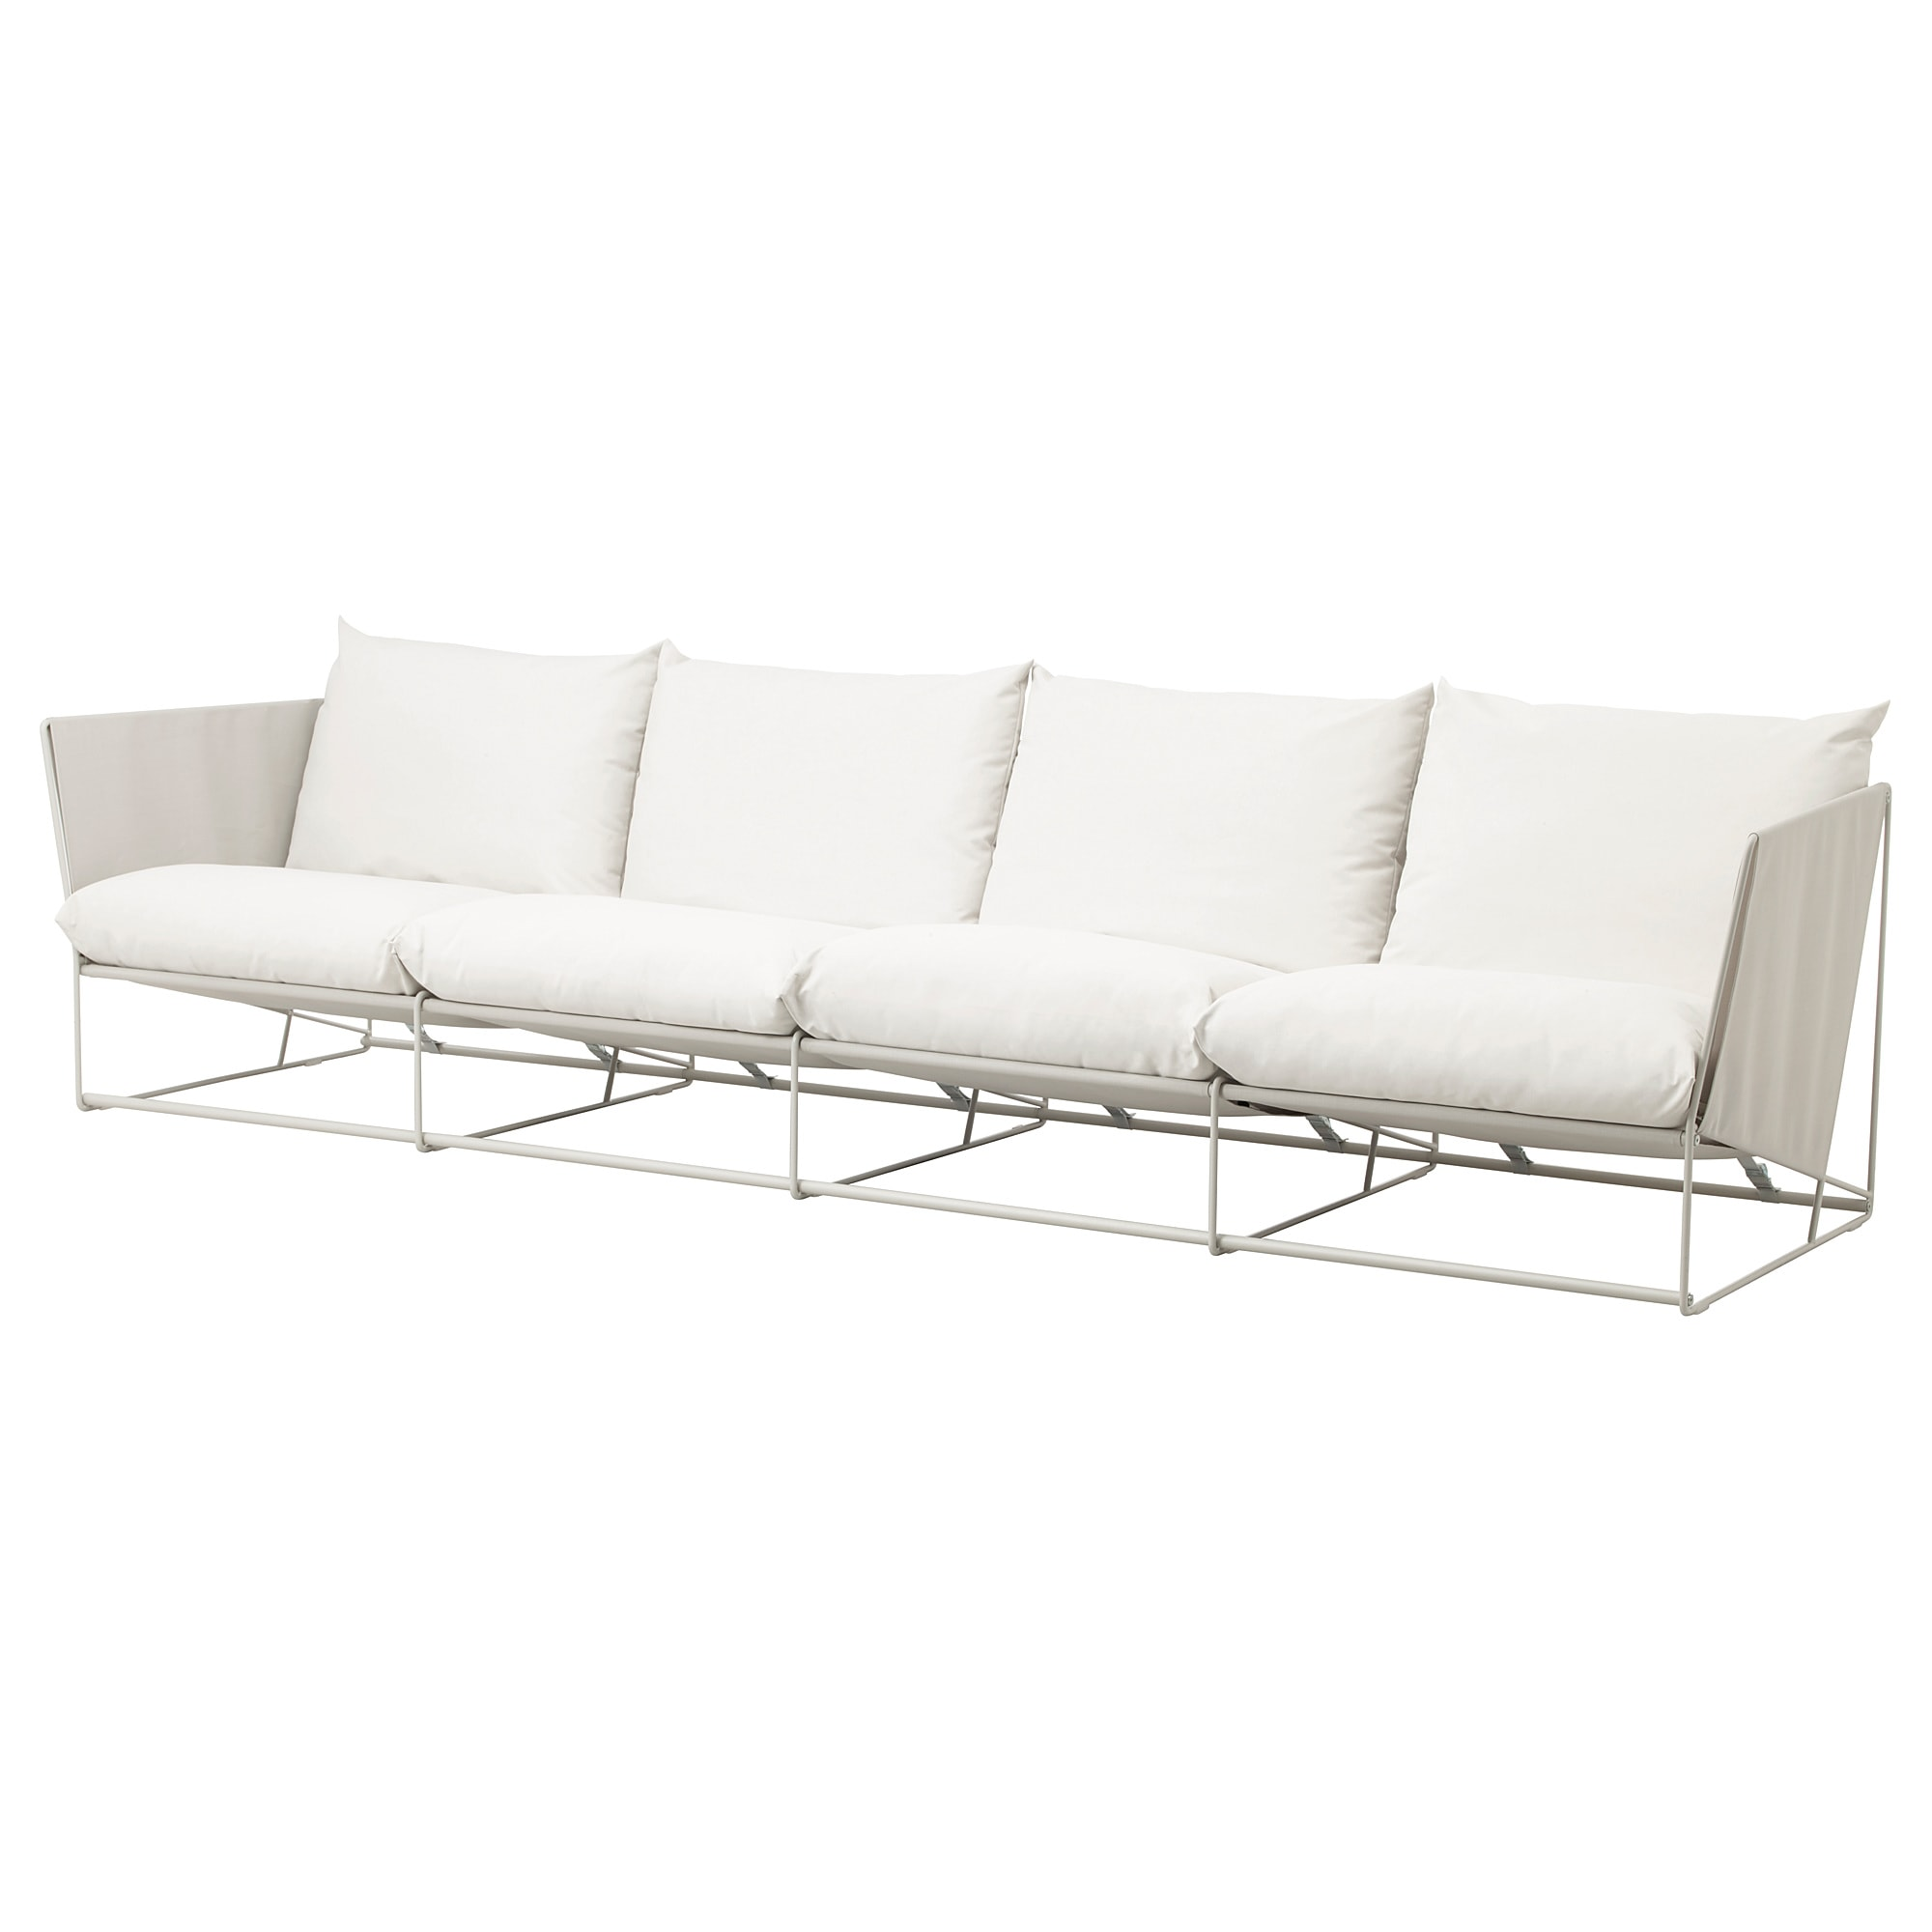 4 Zits Bank Ikea.Havsten 4 Seat Sofa In Outdoor Beige Ikea